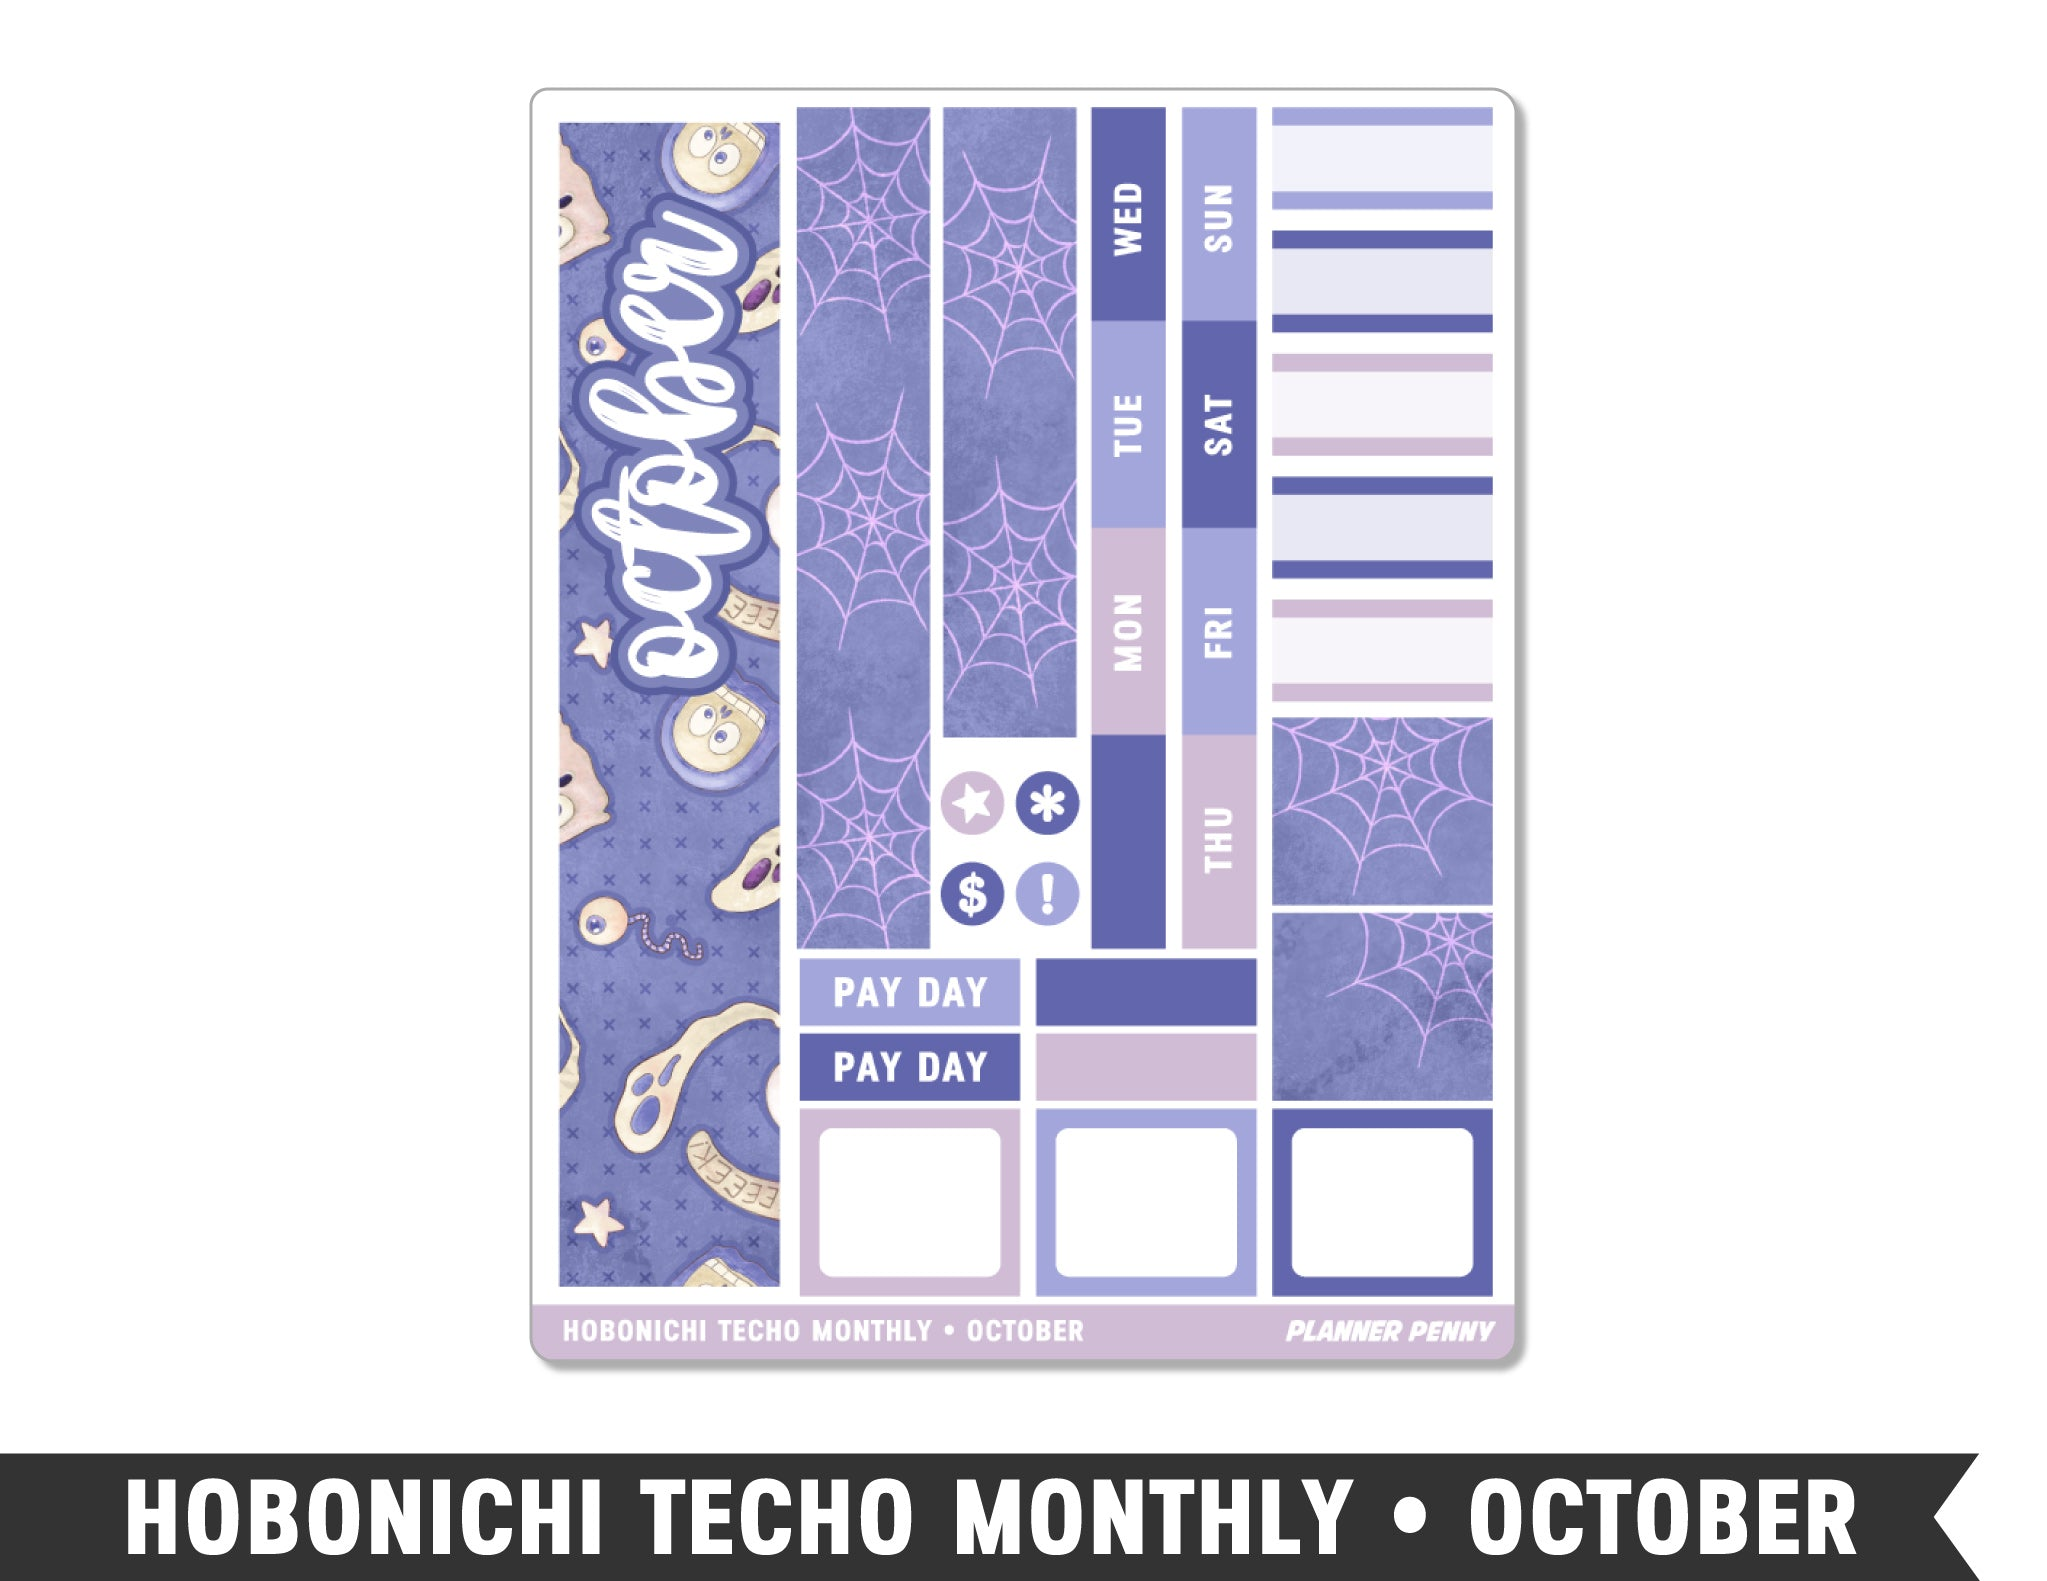 Hobonichi Techo A6 • October • Monthly Spread Planner Stickers - Planner Penny